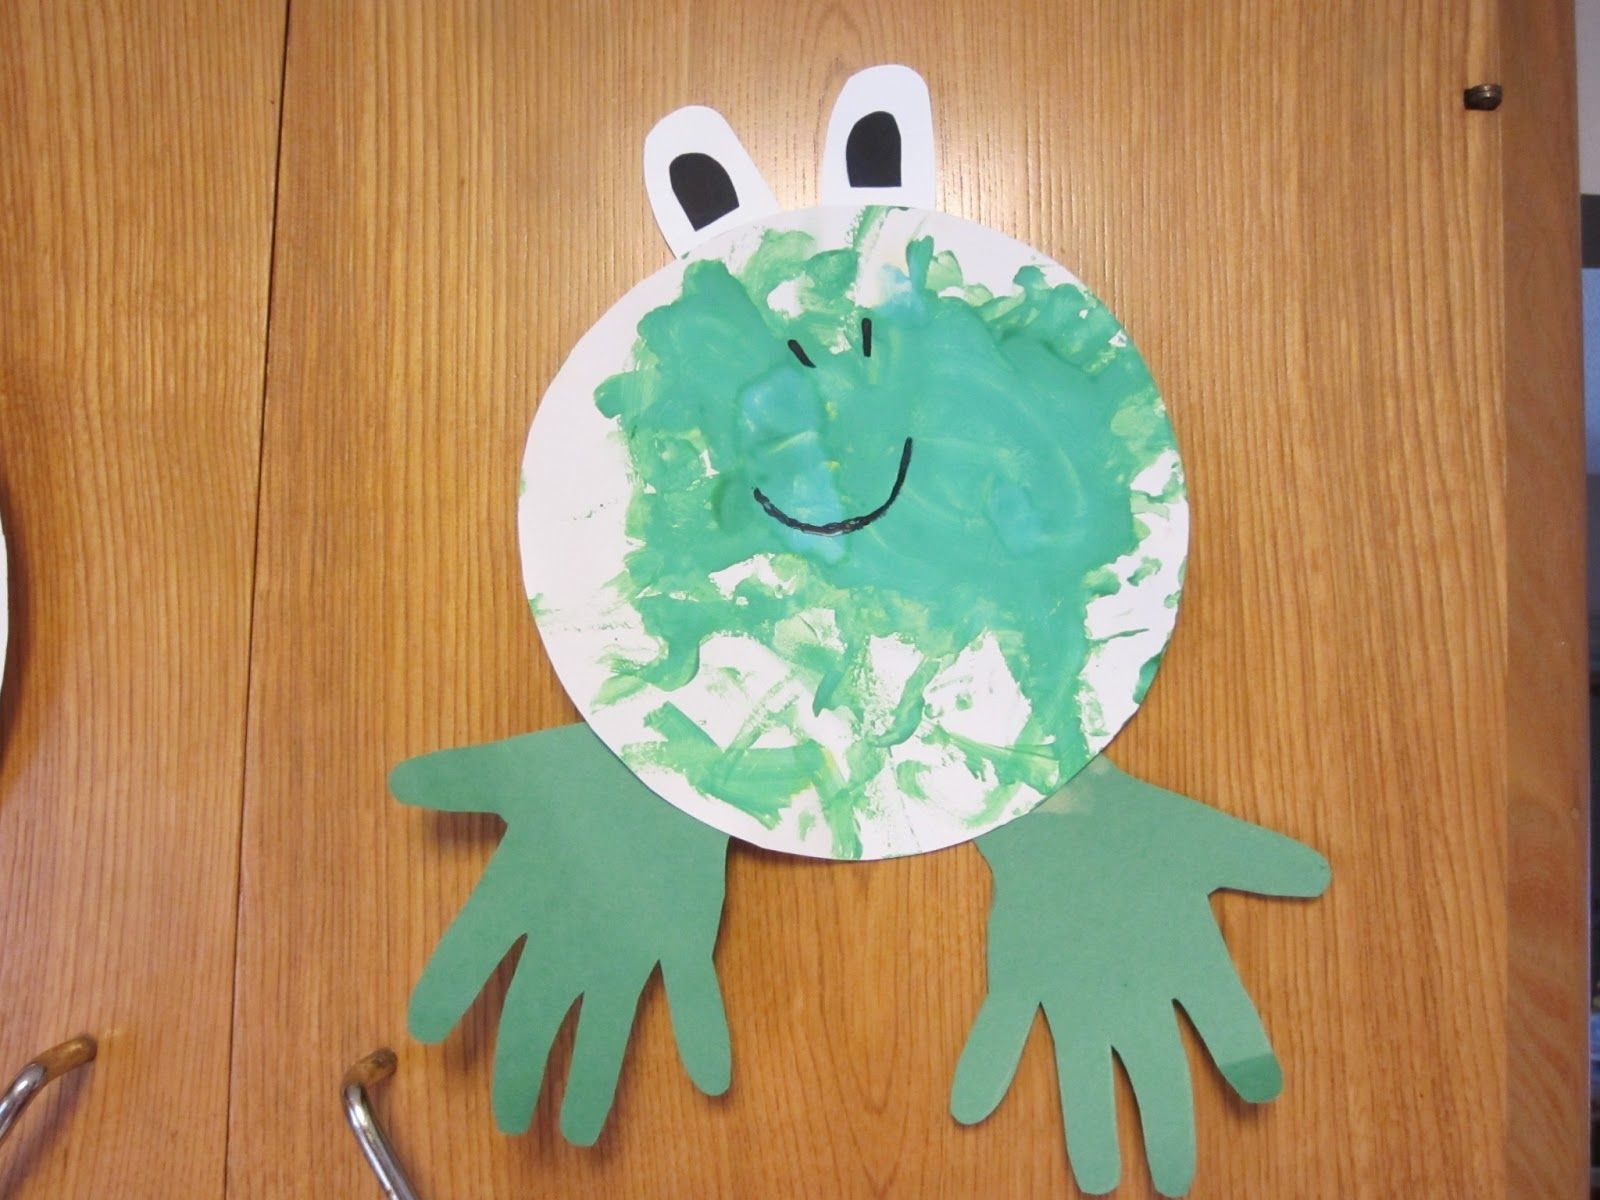 1 color art projects for preschoolers | around the color of the week ...